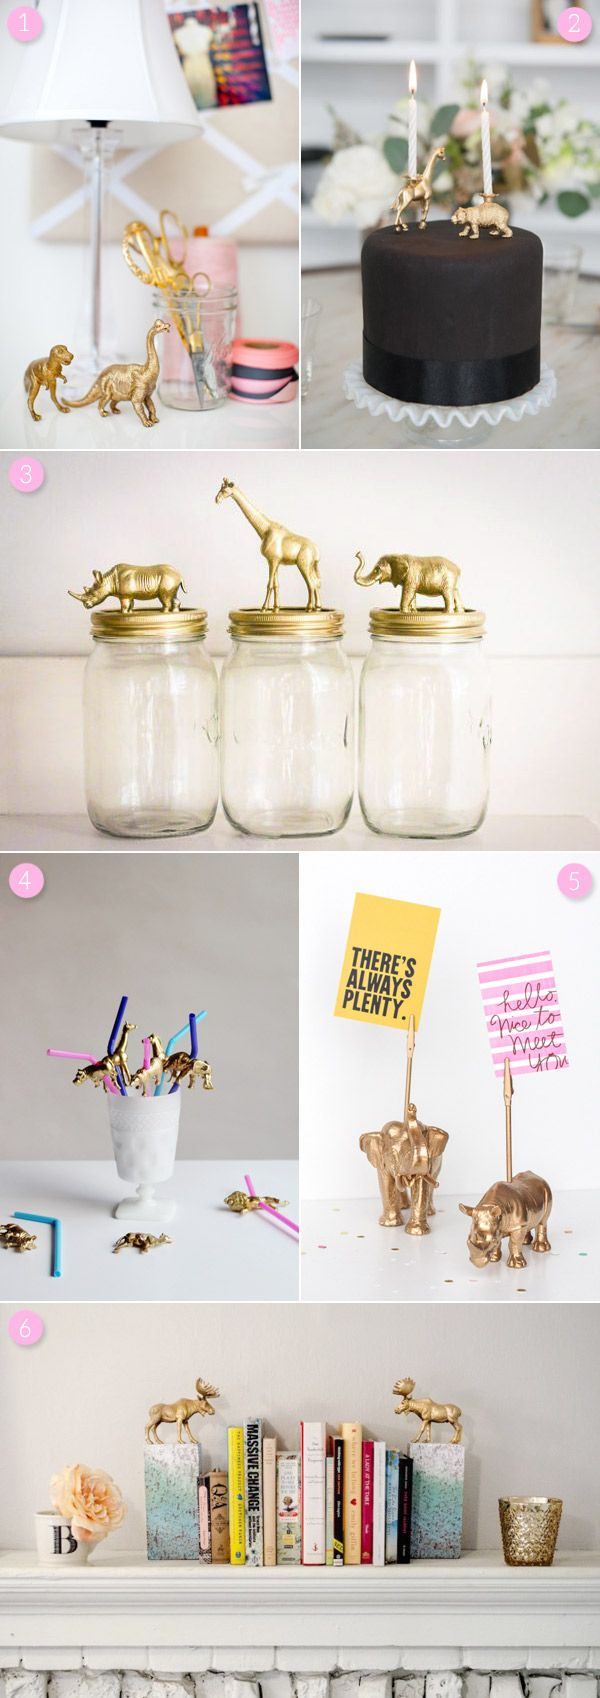 6 Awesome DIY Gold Animal Projects from @cydconverse